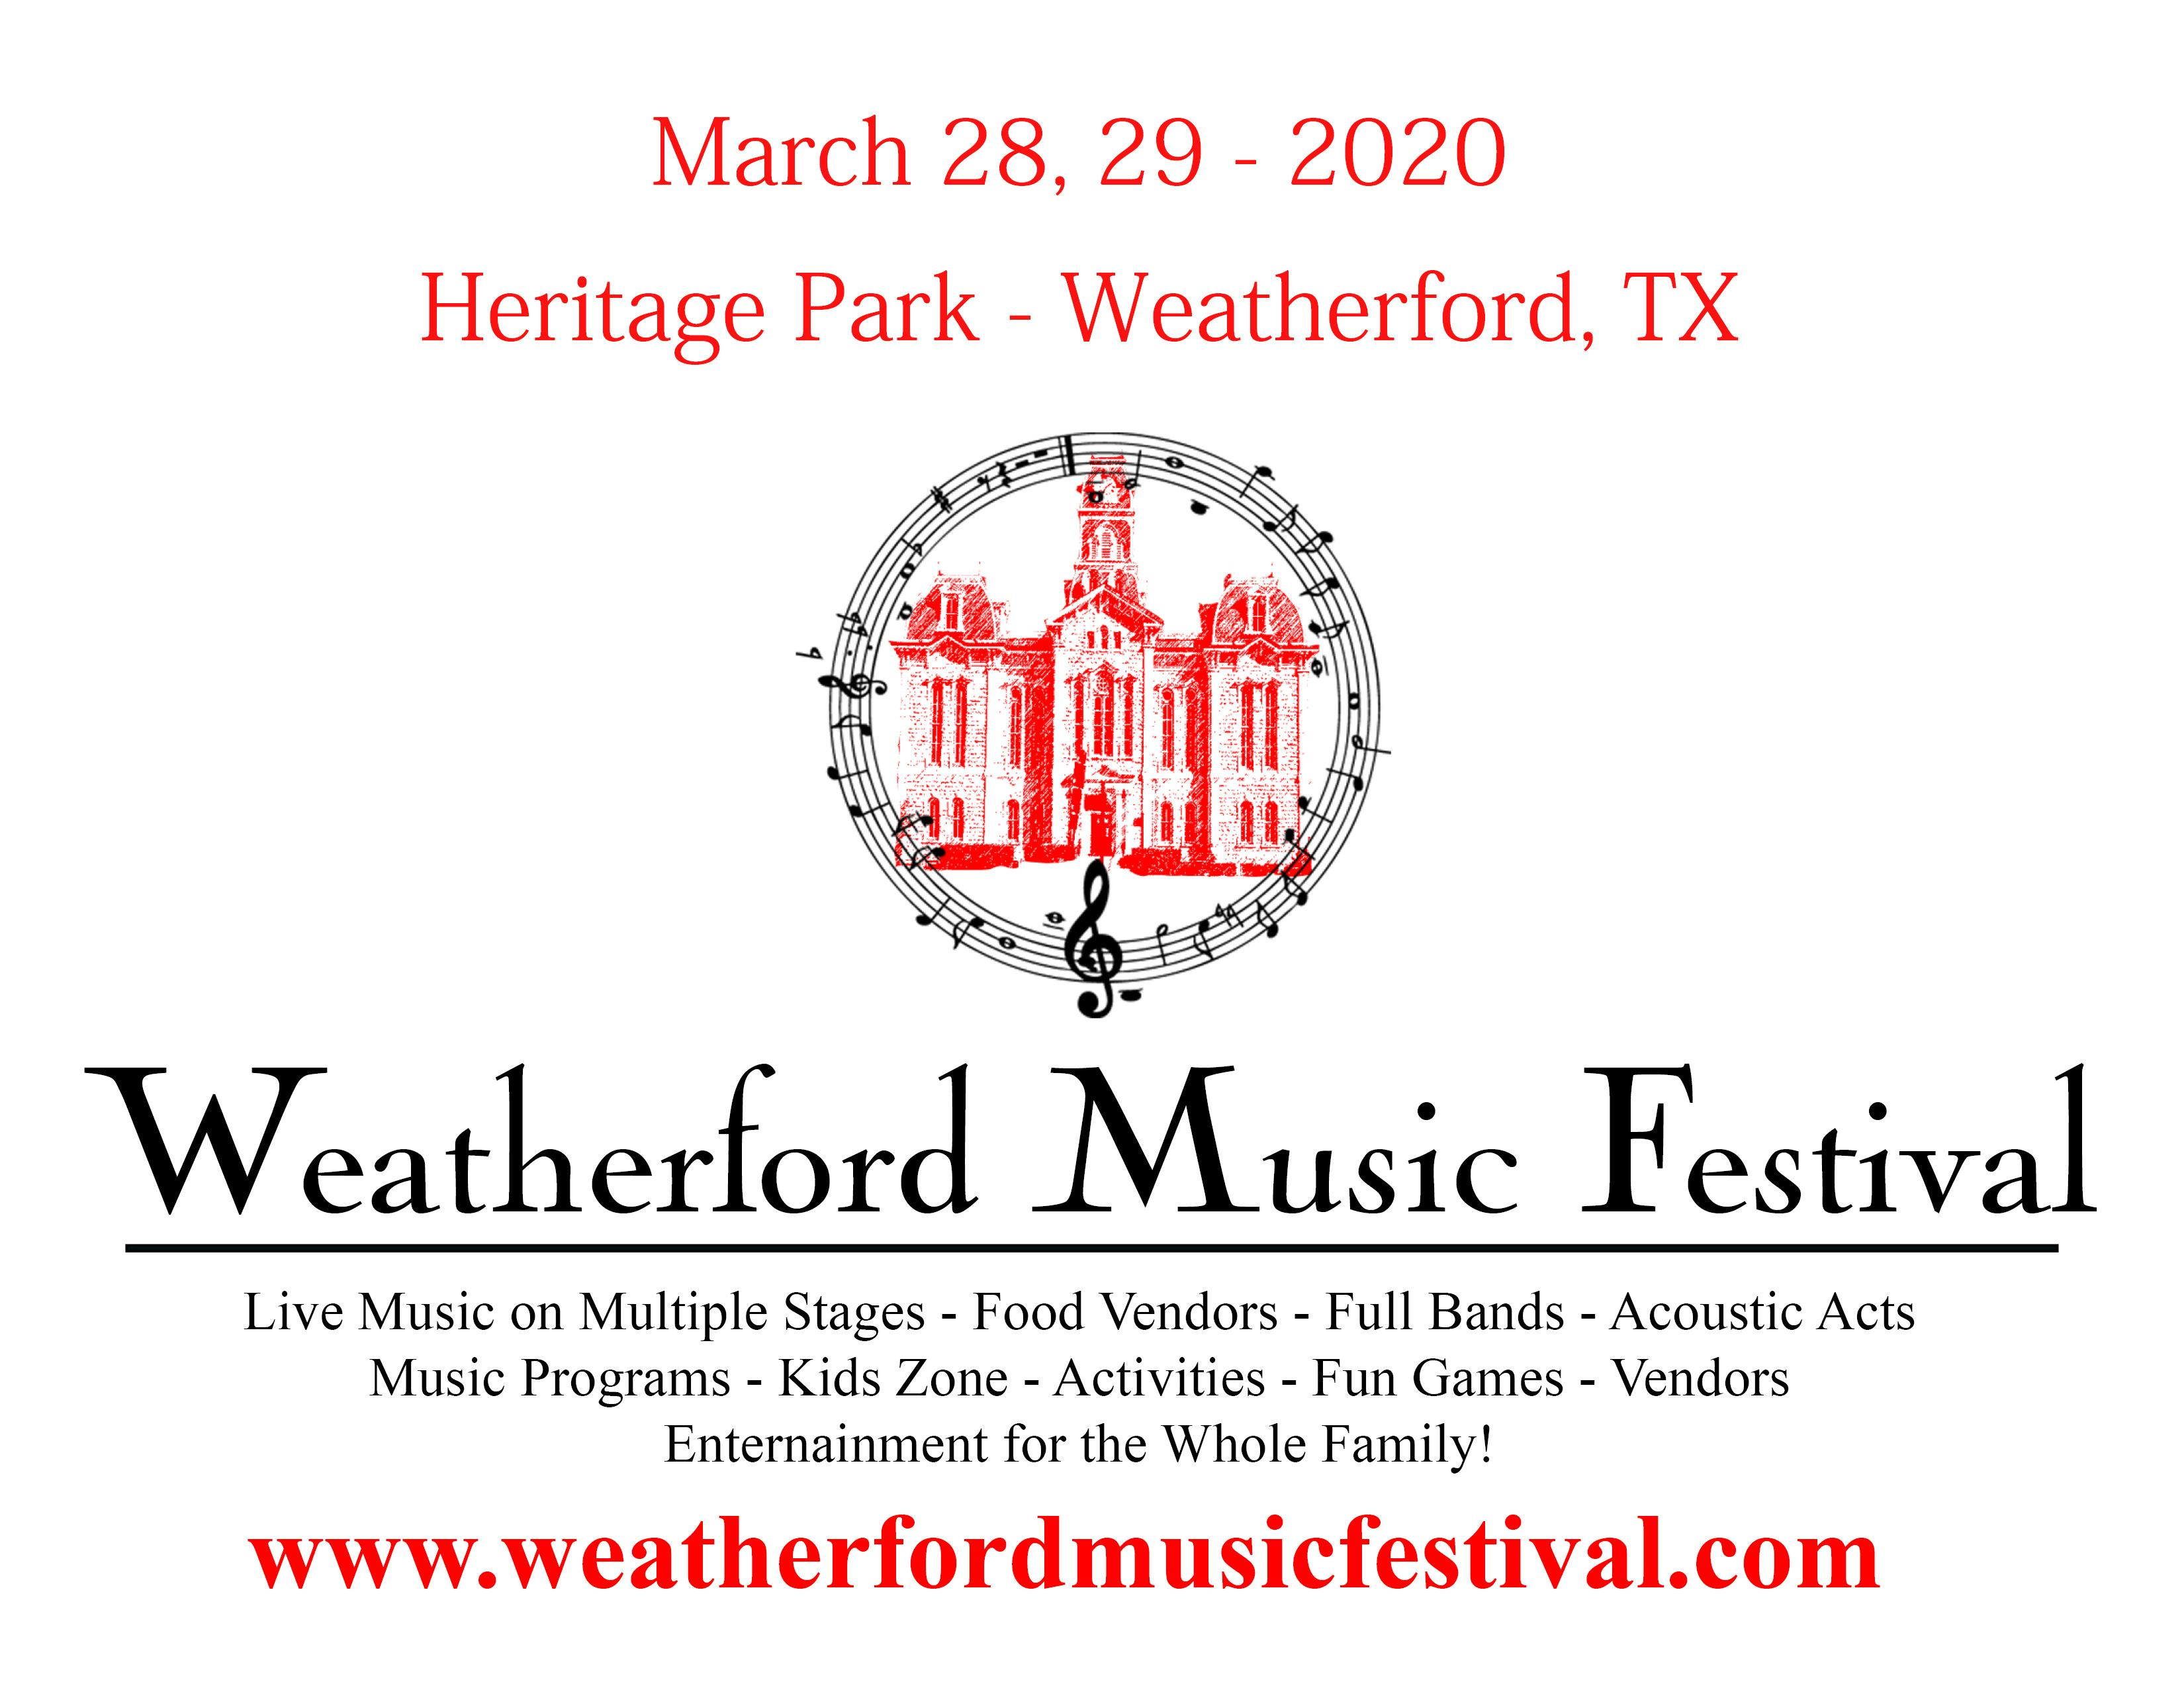 Weatherford Music Festival